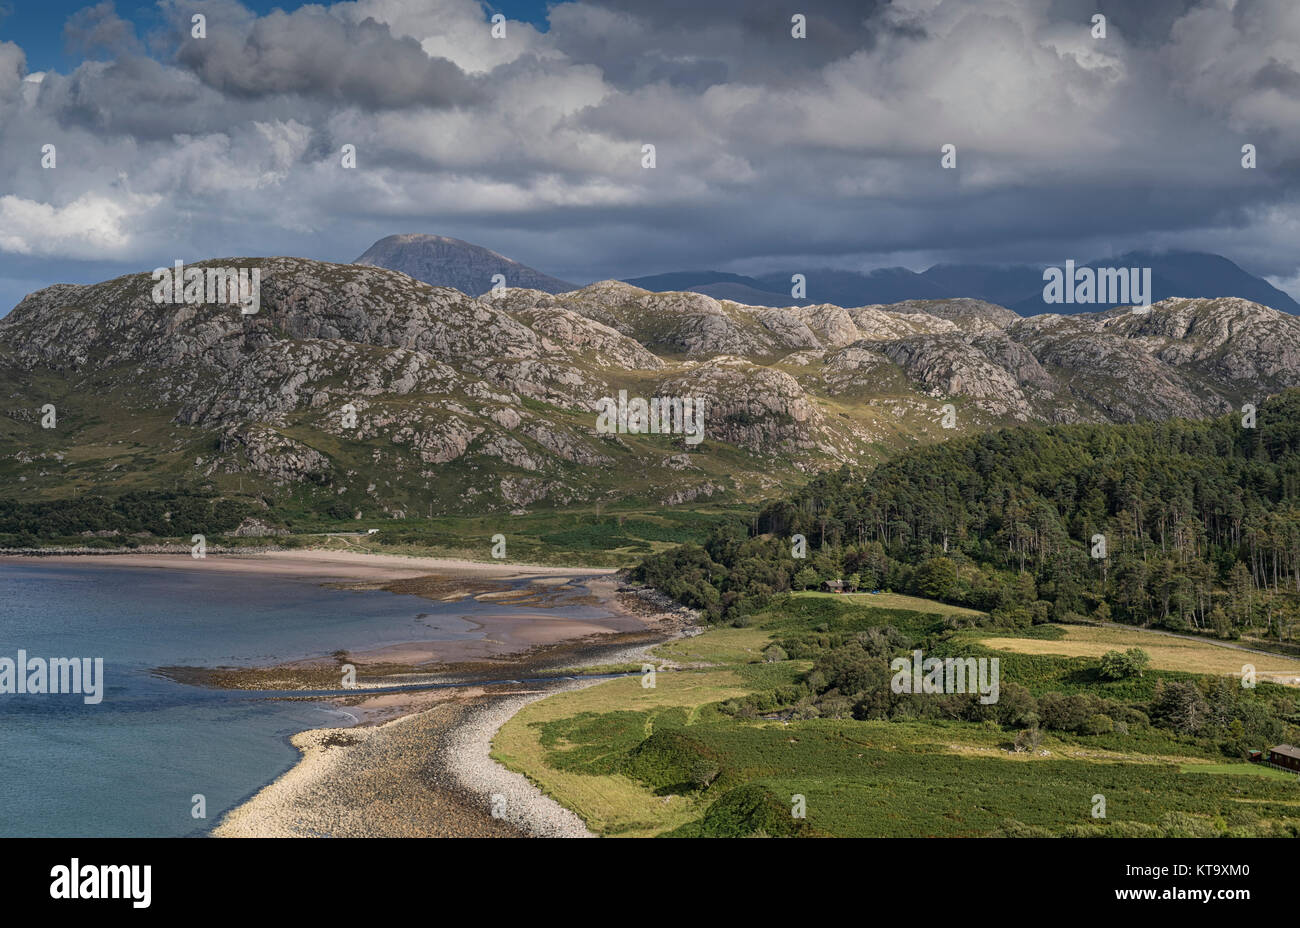 Scenic landscape near Laide in Wester Ross, Scotland - Stock Image